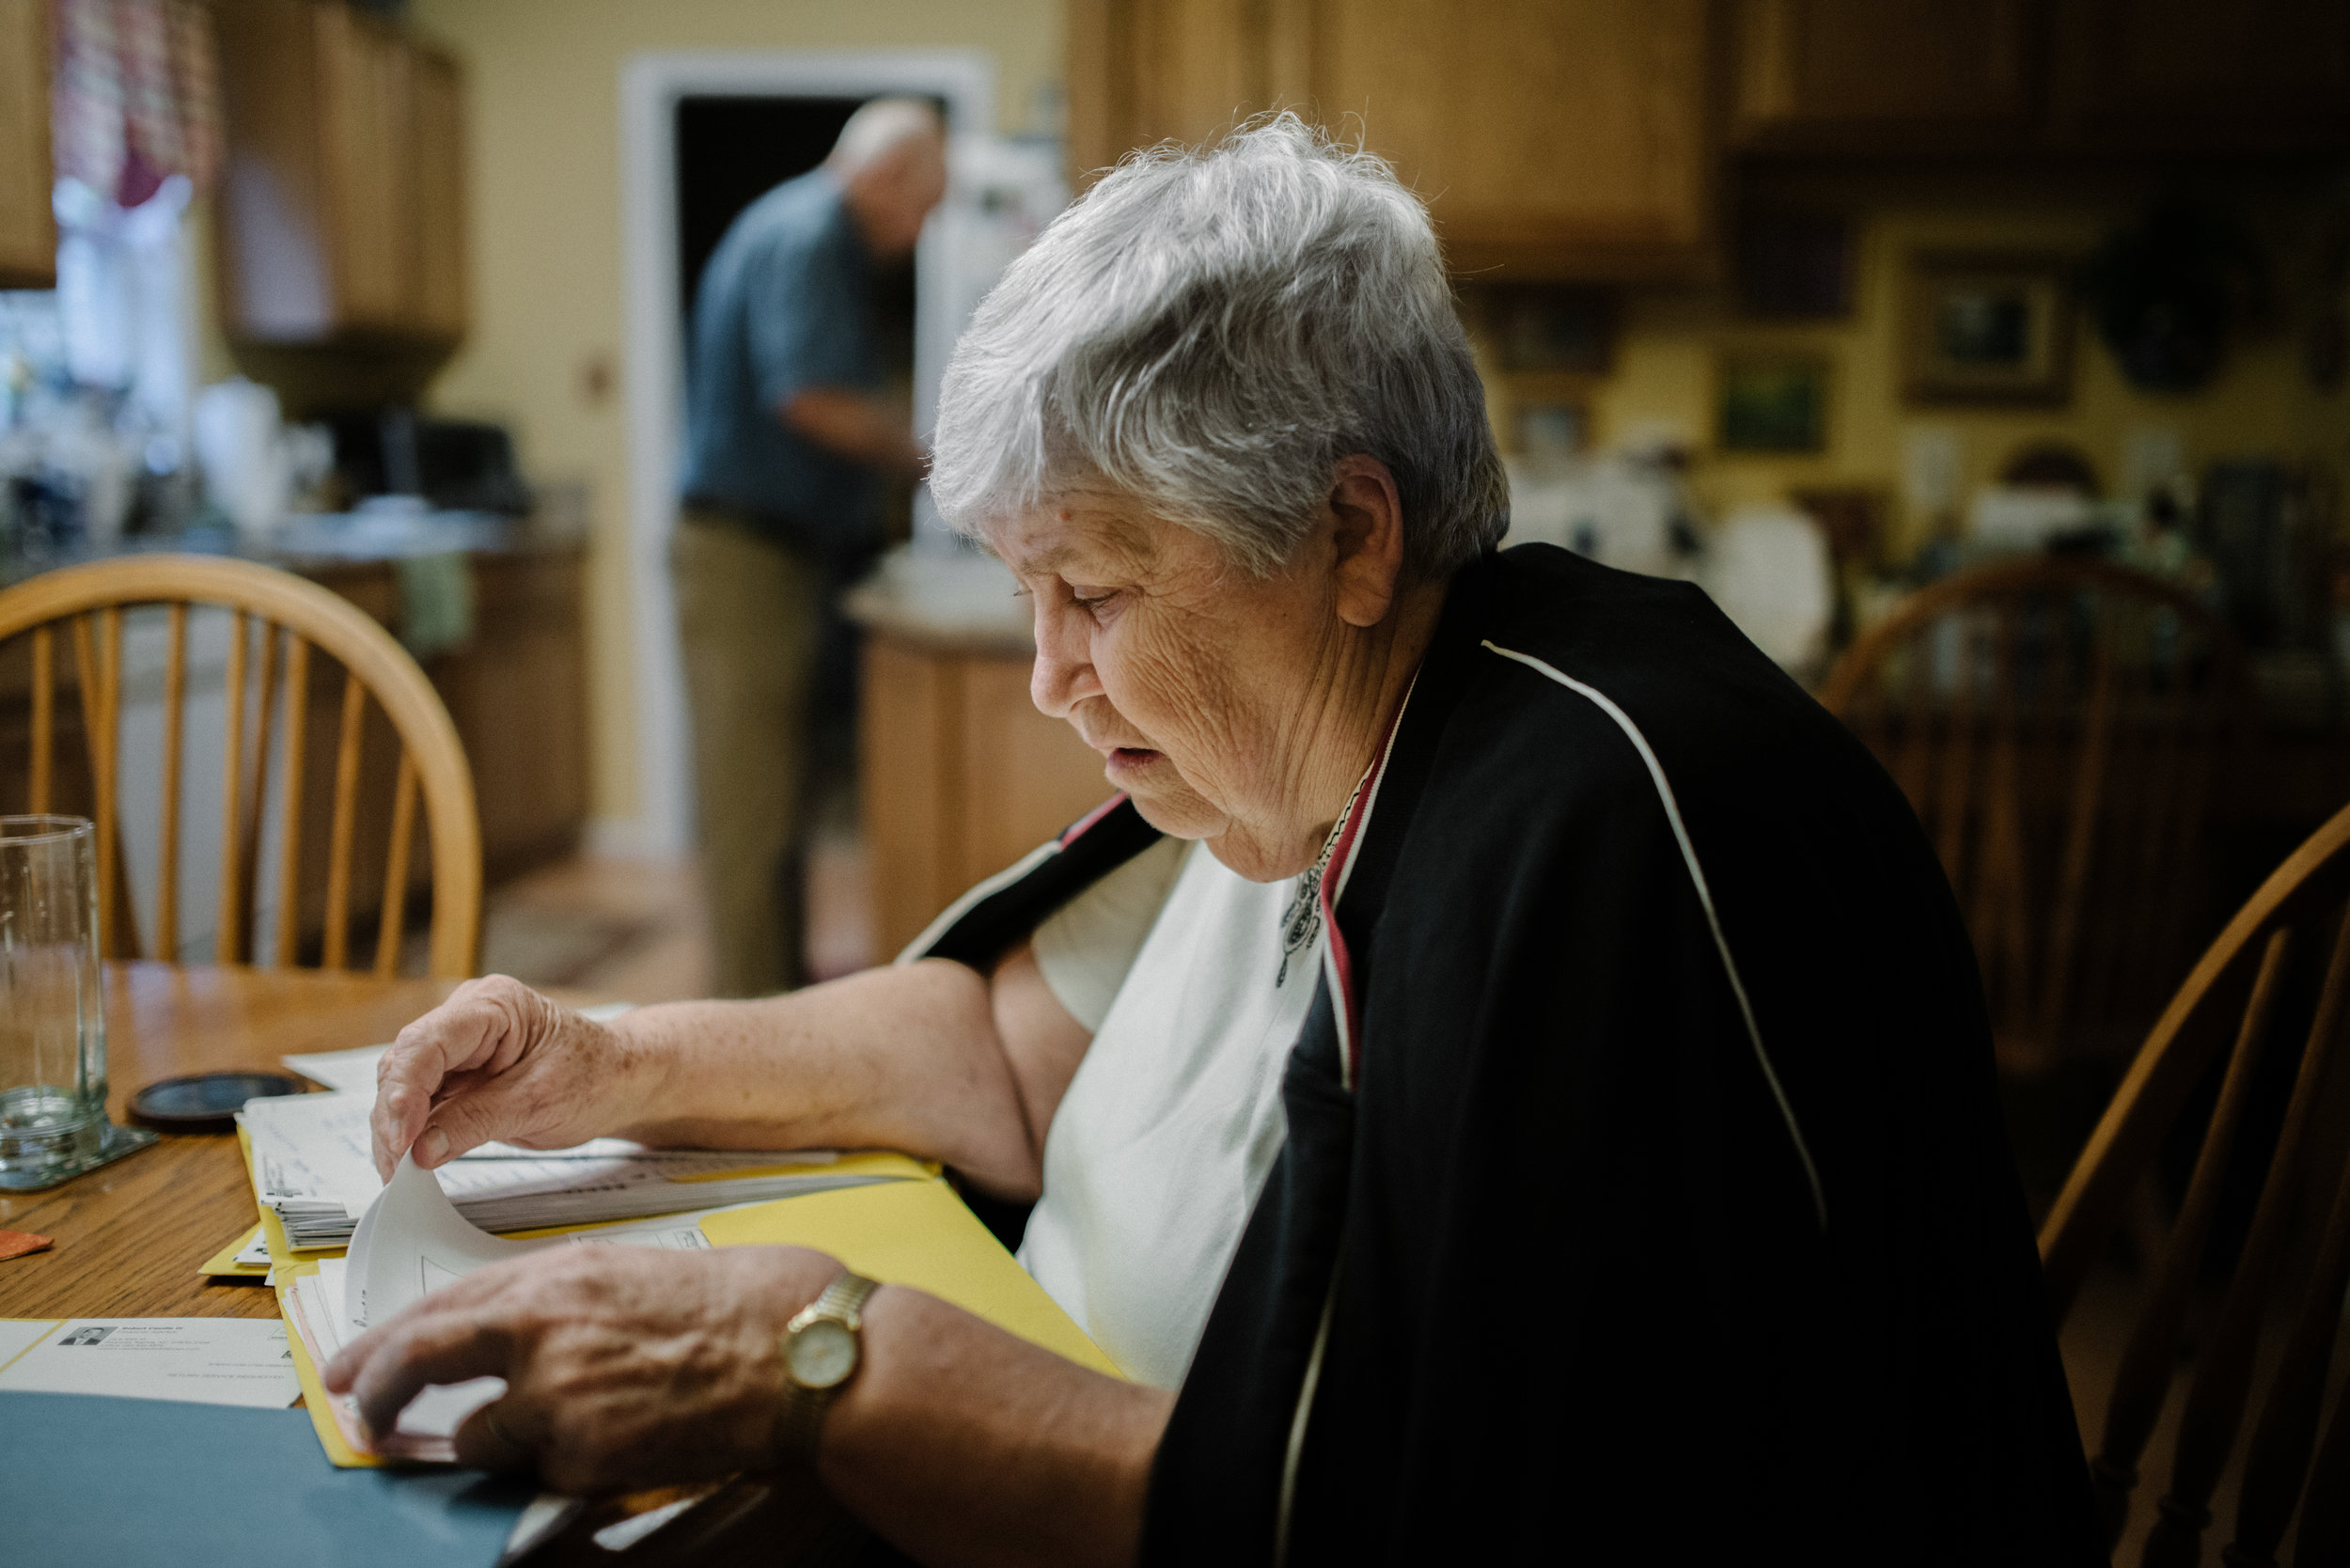 Josephine A. Field, 78, organizes Tom's insurance bills on Thursday, November 5th, 2015 in their Lake Gaston house in Littleton, North Carolina. Tom's insurance company covers most of costs including the usage of helicopter.